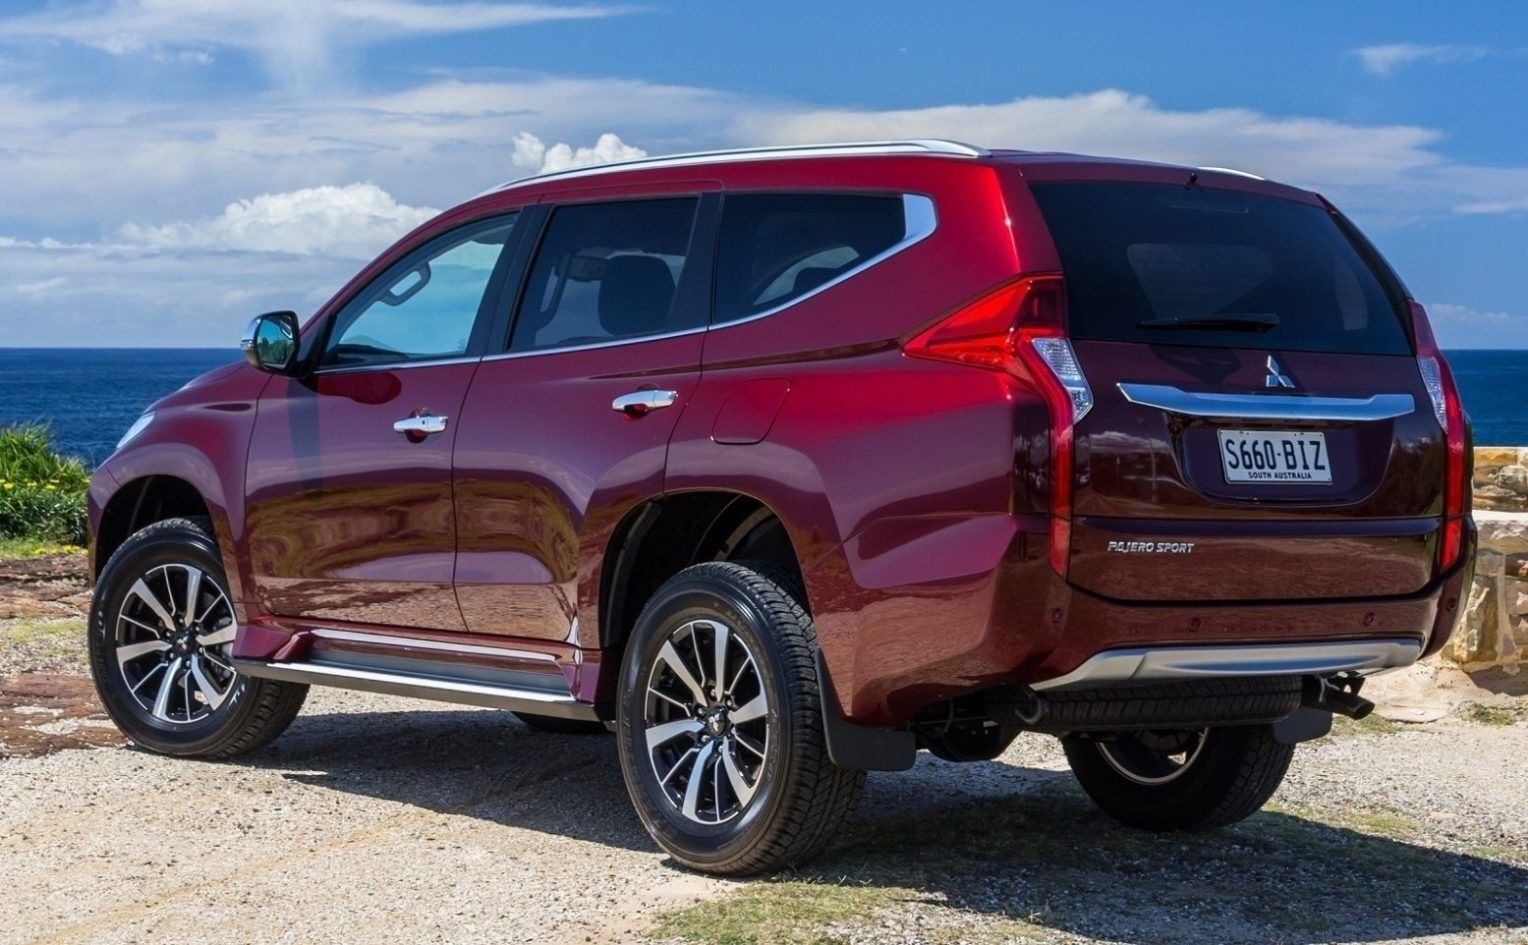 2019 Mitsubishi Montero Sport USA Release Date, Specs, Price >> 2019 Mitsubishi Montero Usa Price And Release Date Best Car Hd